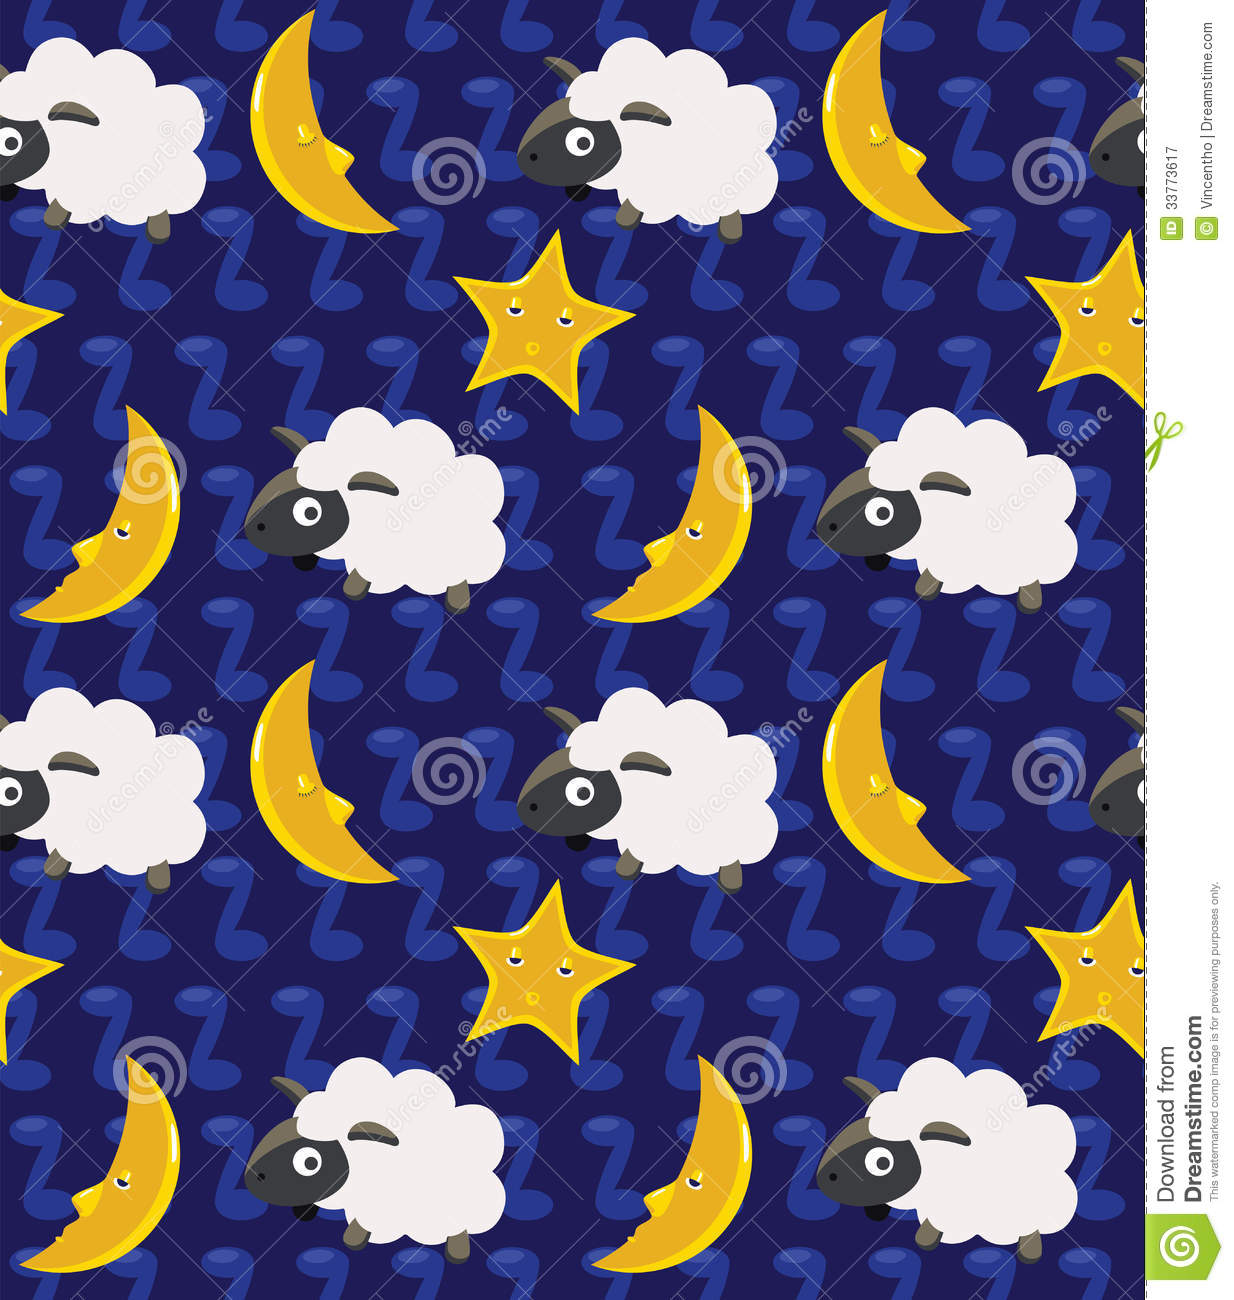 Cute Cartoon Face Wallpaper Count The Sheep And Moon Seamless Background Royalty Free